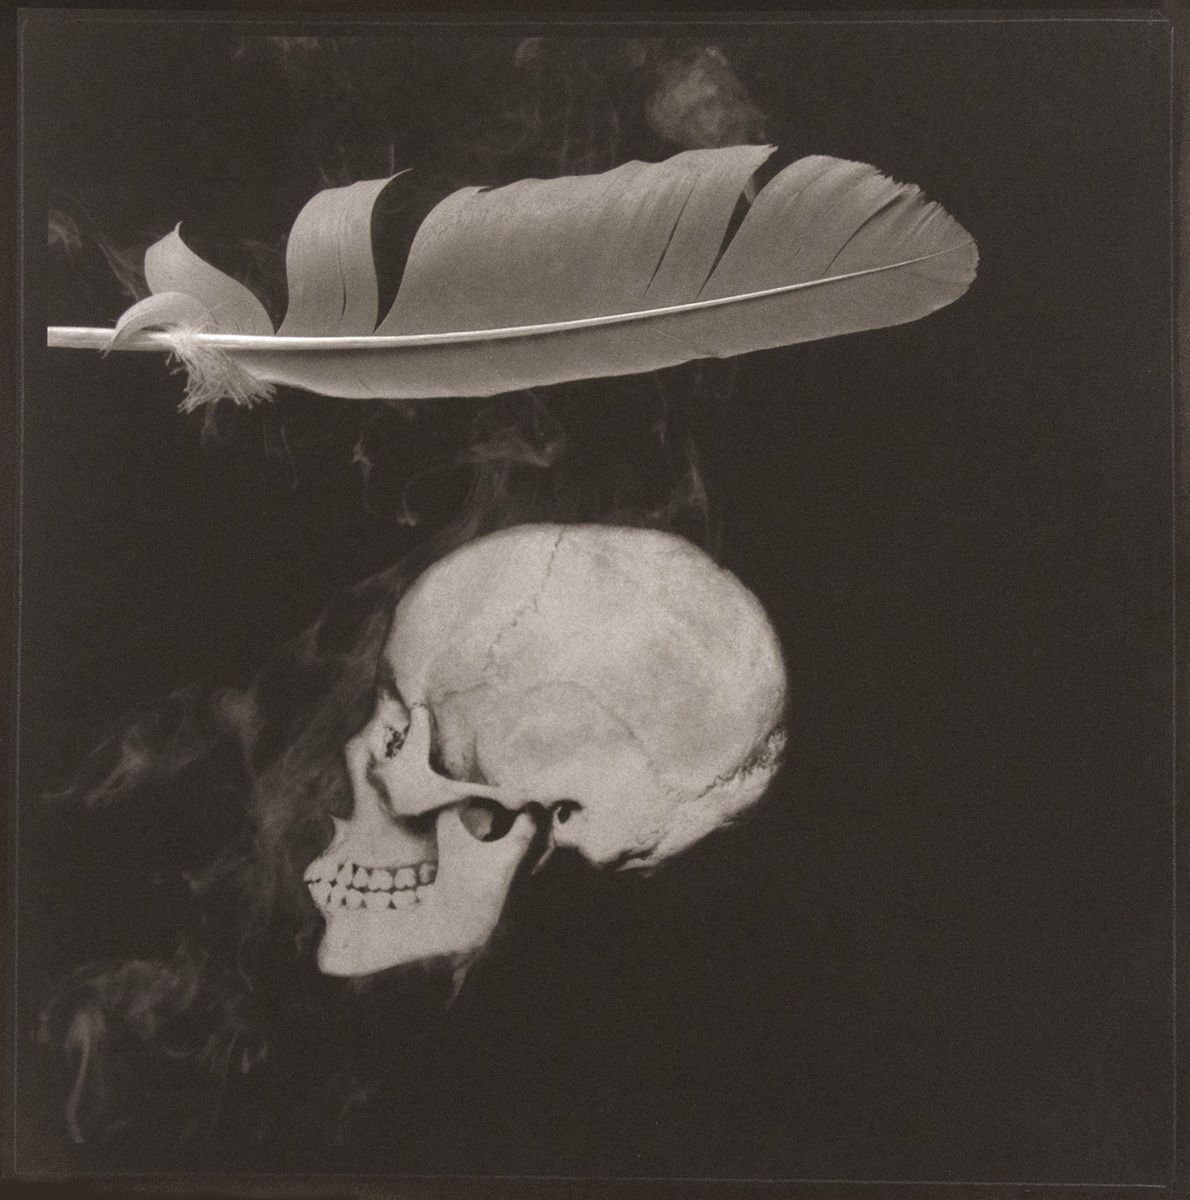 1492, FEATHER SERIES (2 OF 5), platinum photograph 1992